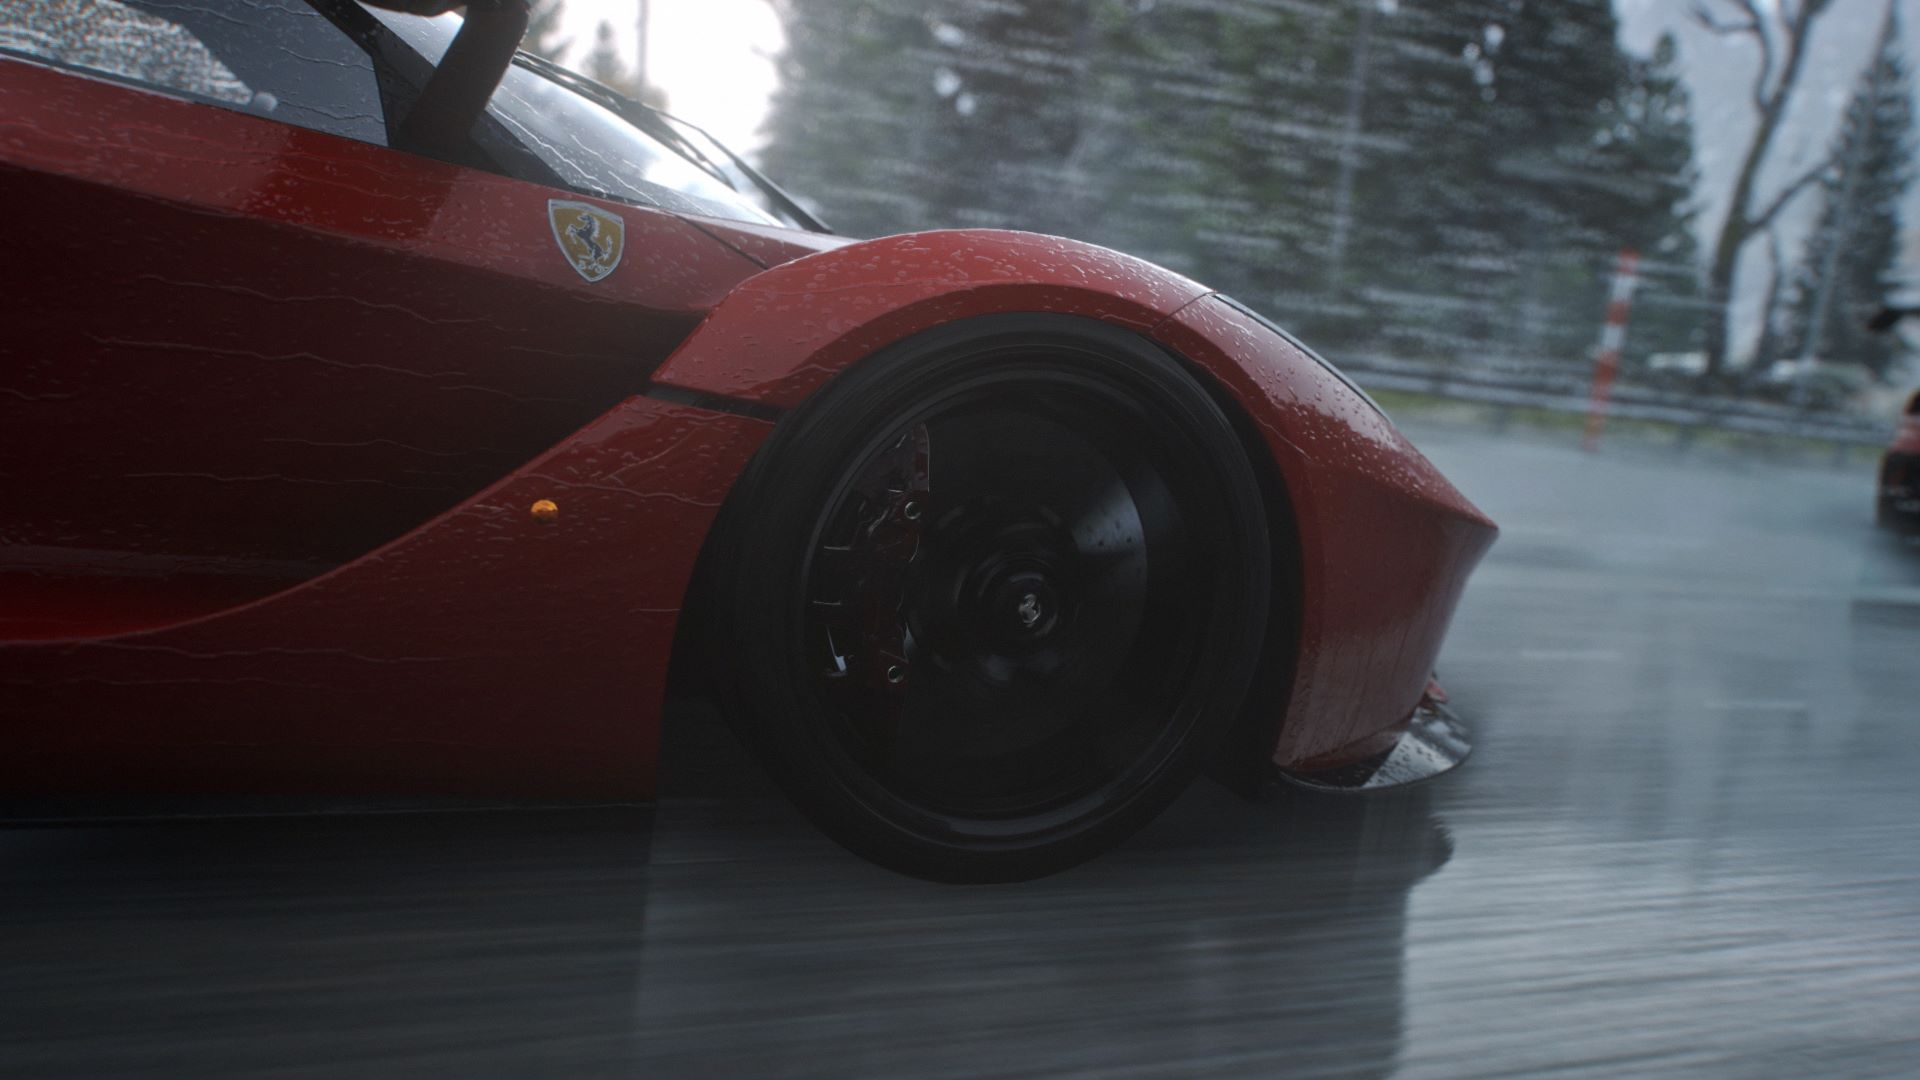 DriveClub PS Plus Edition arrives prematurely, full release coming soon (update)